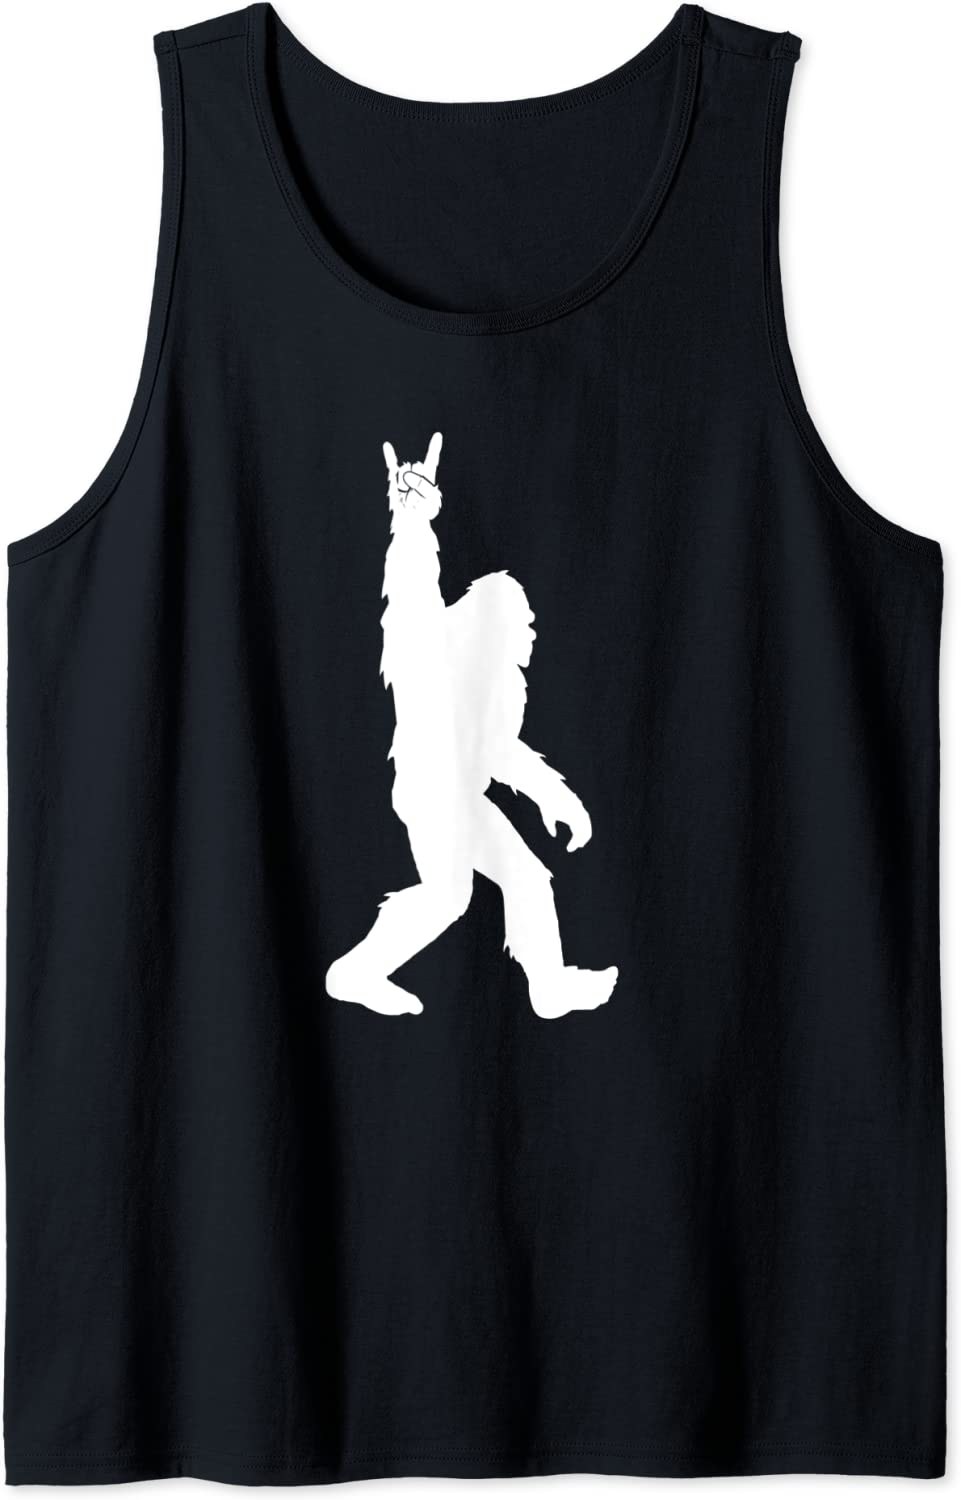 Funny Bigfoot Rock and Roll Tank Regular Soldering store Sasquatch for Believers Tshirt